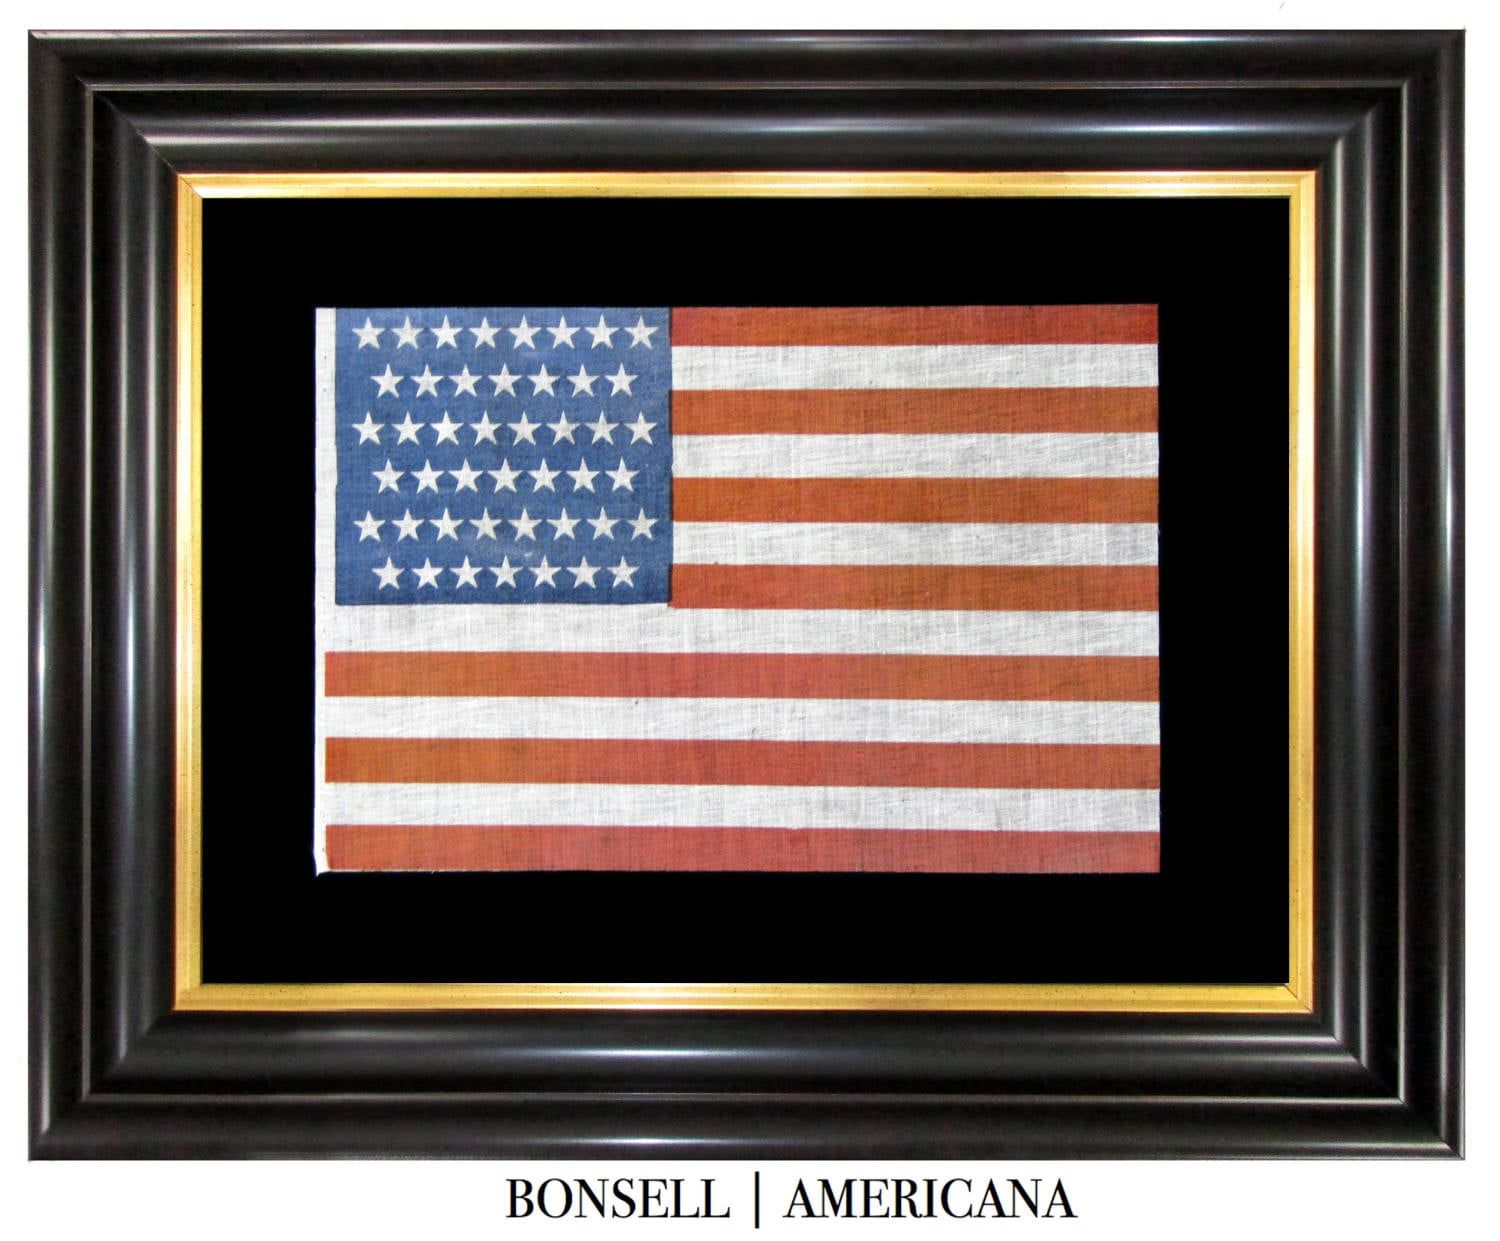 Antique Flag with Lineal Star Pattern